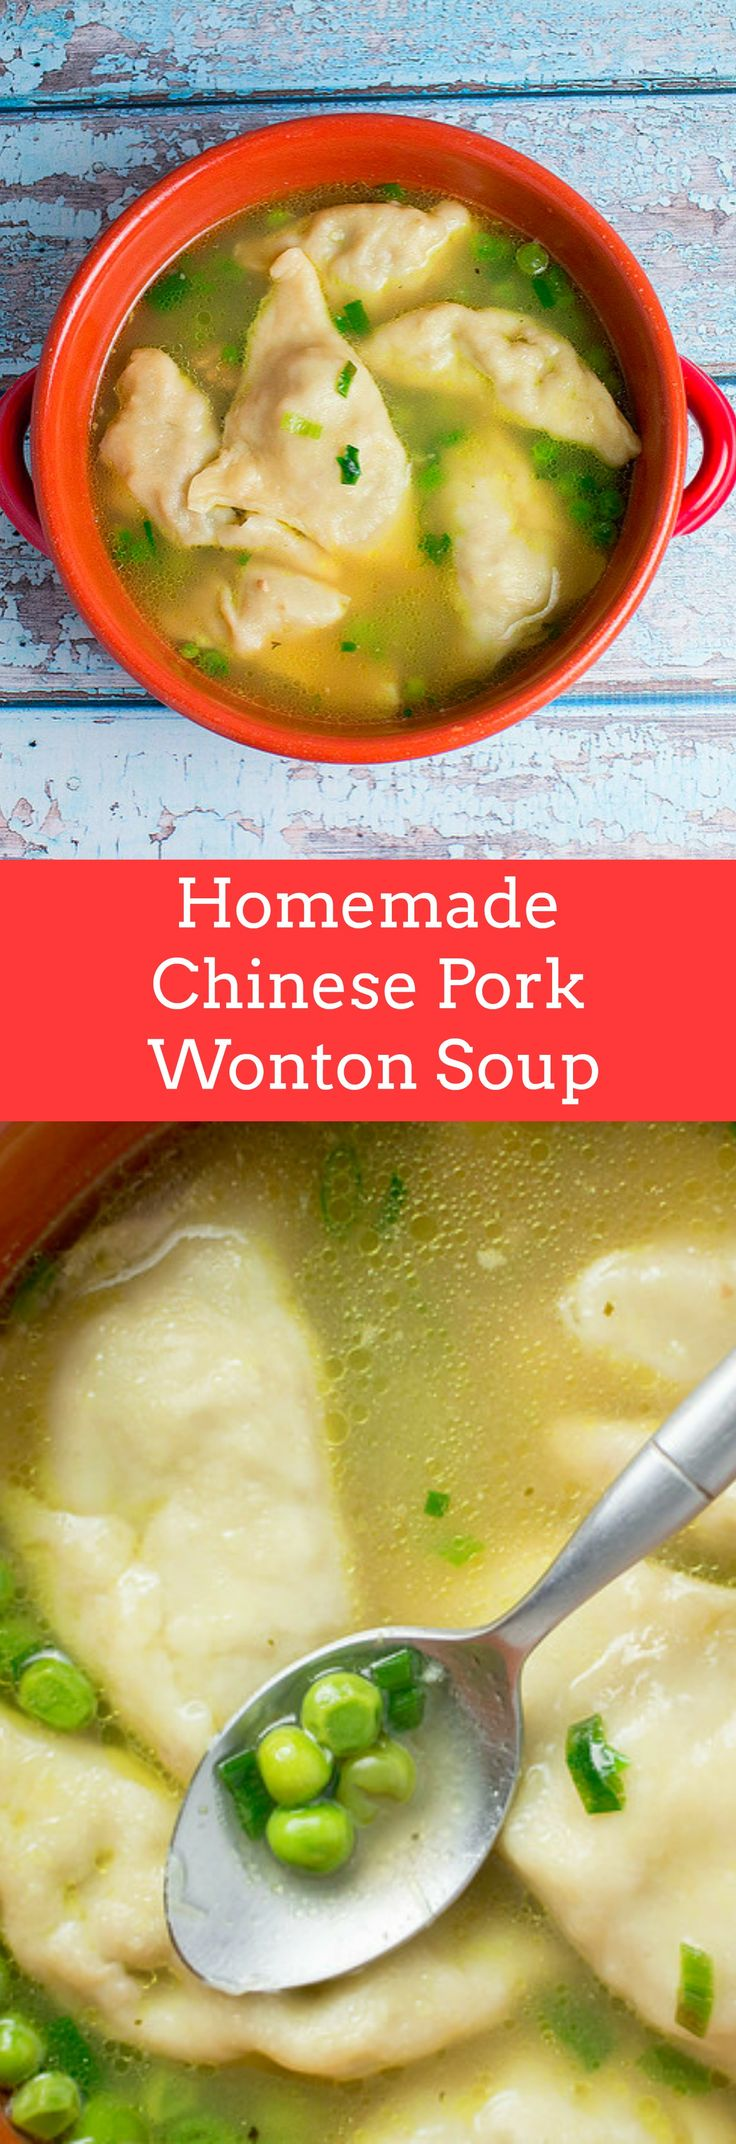 Homemade Chinese Pork Wonton Soup recipe.  This tastes just like takeout but is much healthier!